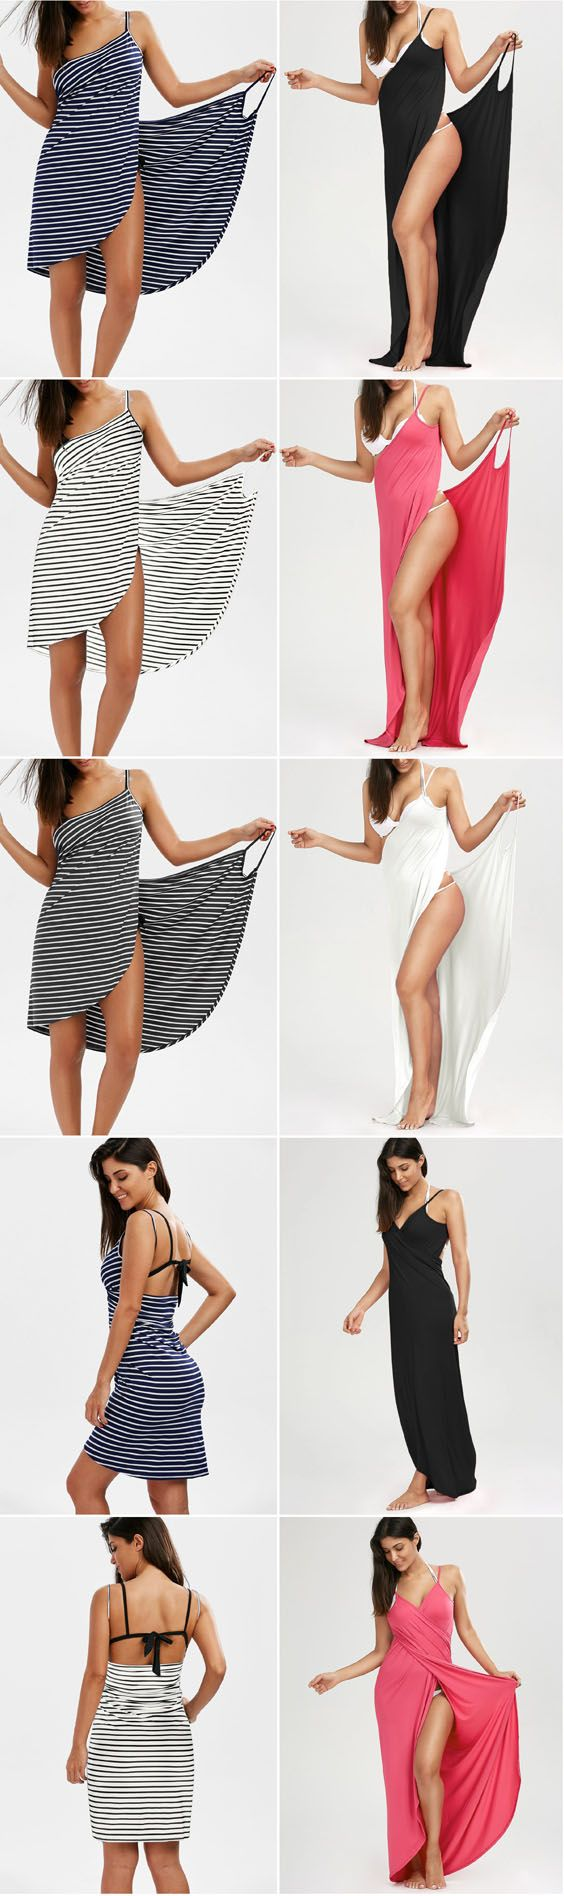 Up to 80% OFF! Striped Open Back Multiway Wrap Cover-ups Dress. #Zaful #coverup #swimwear Zaful, zaful bikinis, zaful swimwear, style, outfits,sweater, hoodies, women fashion, summer outfits, swimwear, bikinis, micro bikini, high waisted bikini, halter bikini, crochet bikini, one piece swimwear, tankini, bikini set, cover ups, bathing suit, swimsuits, summer fashion, summer outfits, Christmas, ugly Christmas, Thanksgiving, Gift, New Year Eve, New Year 2017. @zaful Extra 10% OFF Code:ZF2017